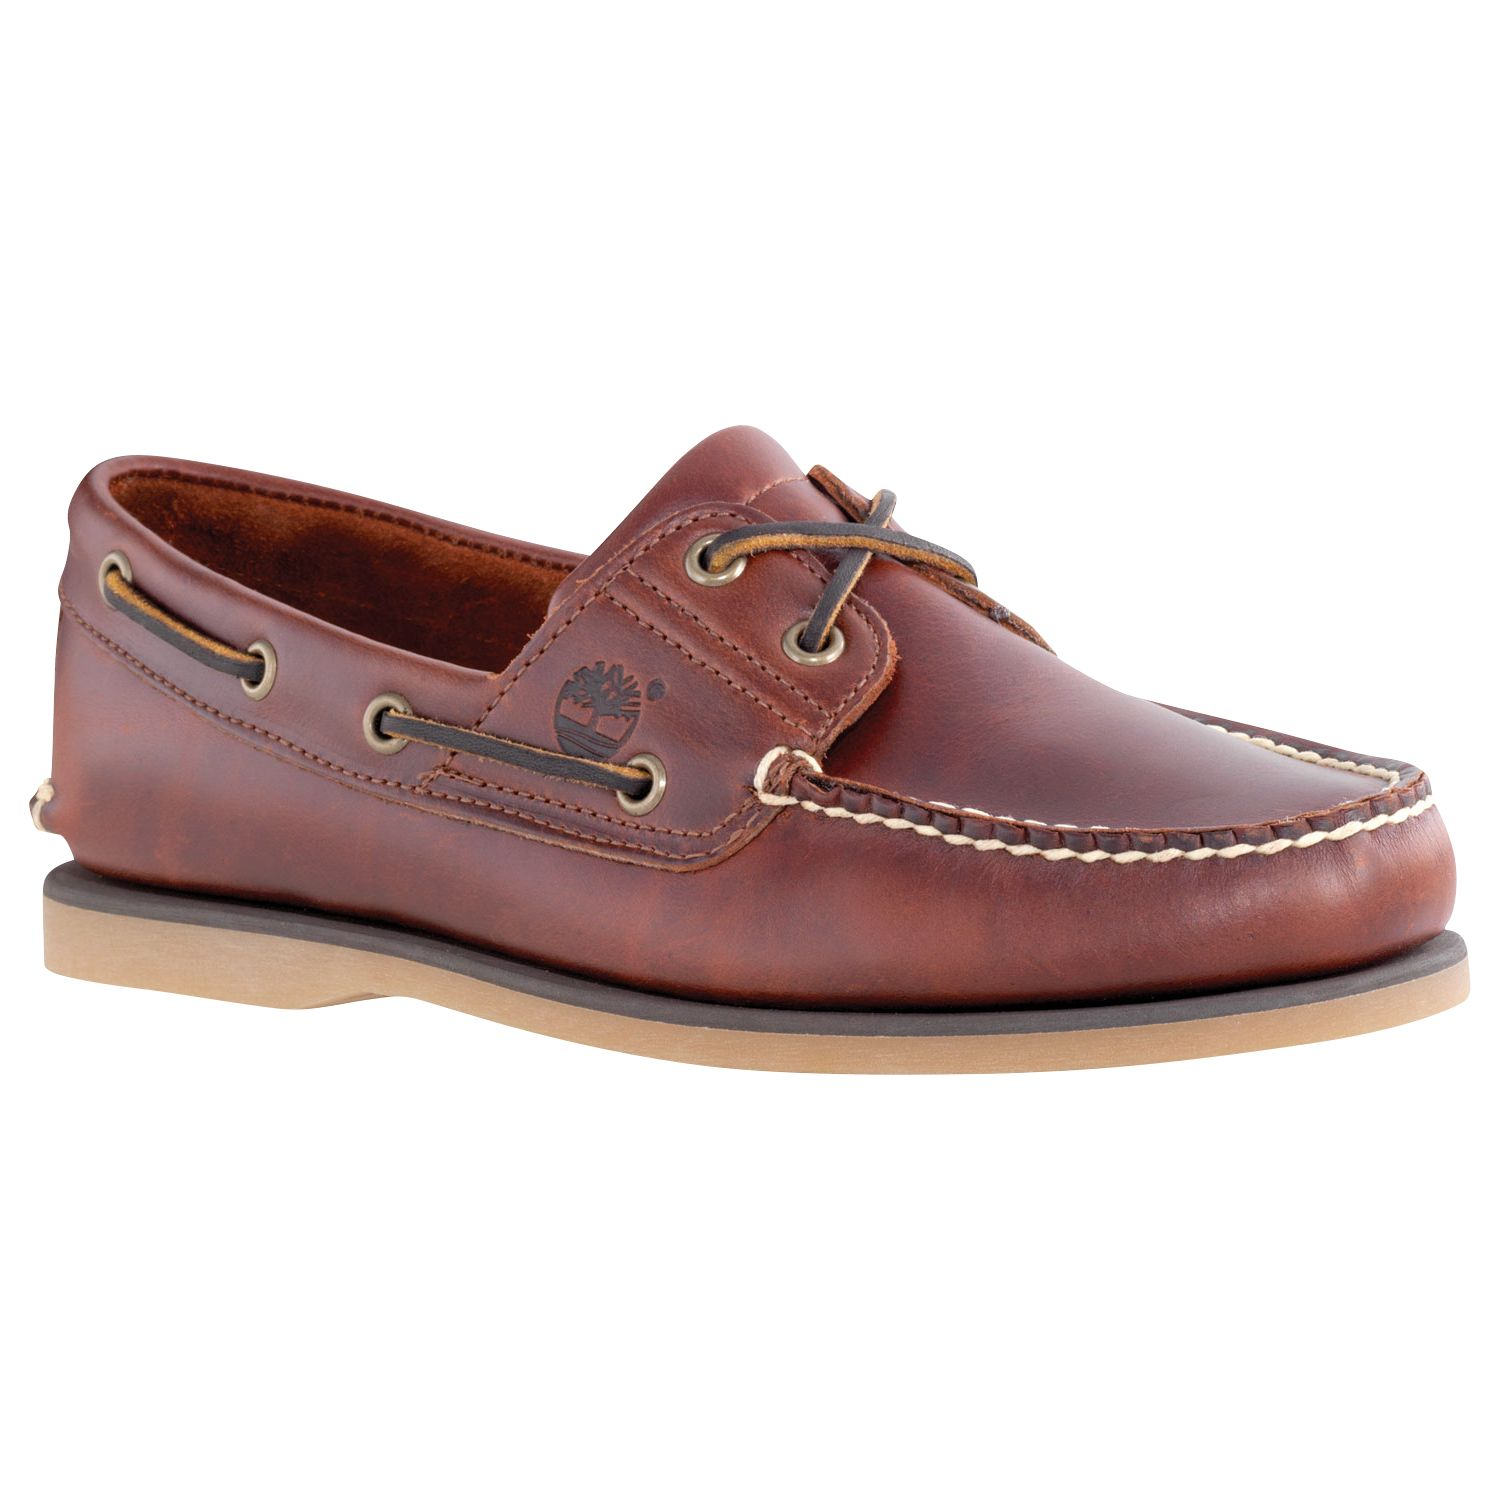 Timberland Timberland Leather Boat Shoes, Brown